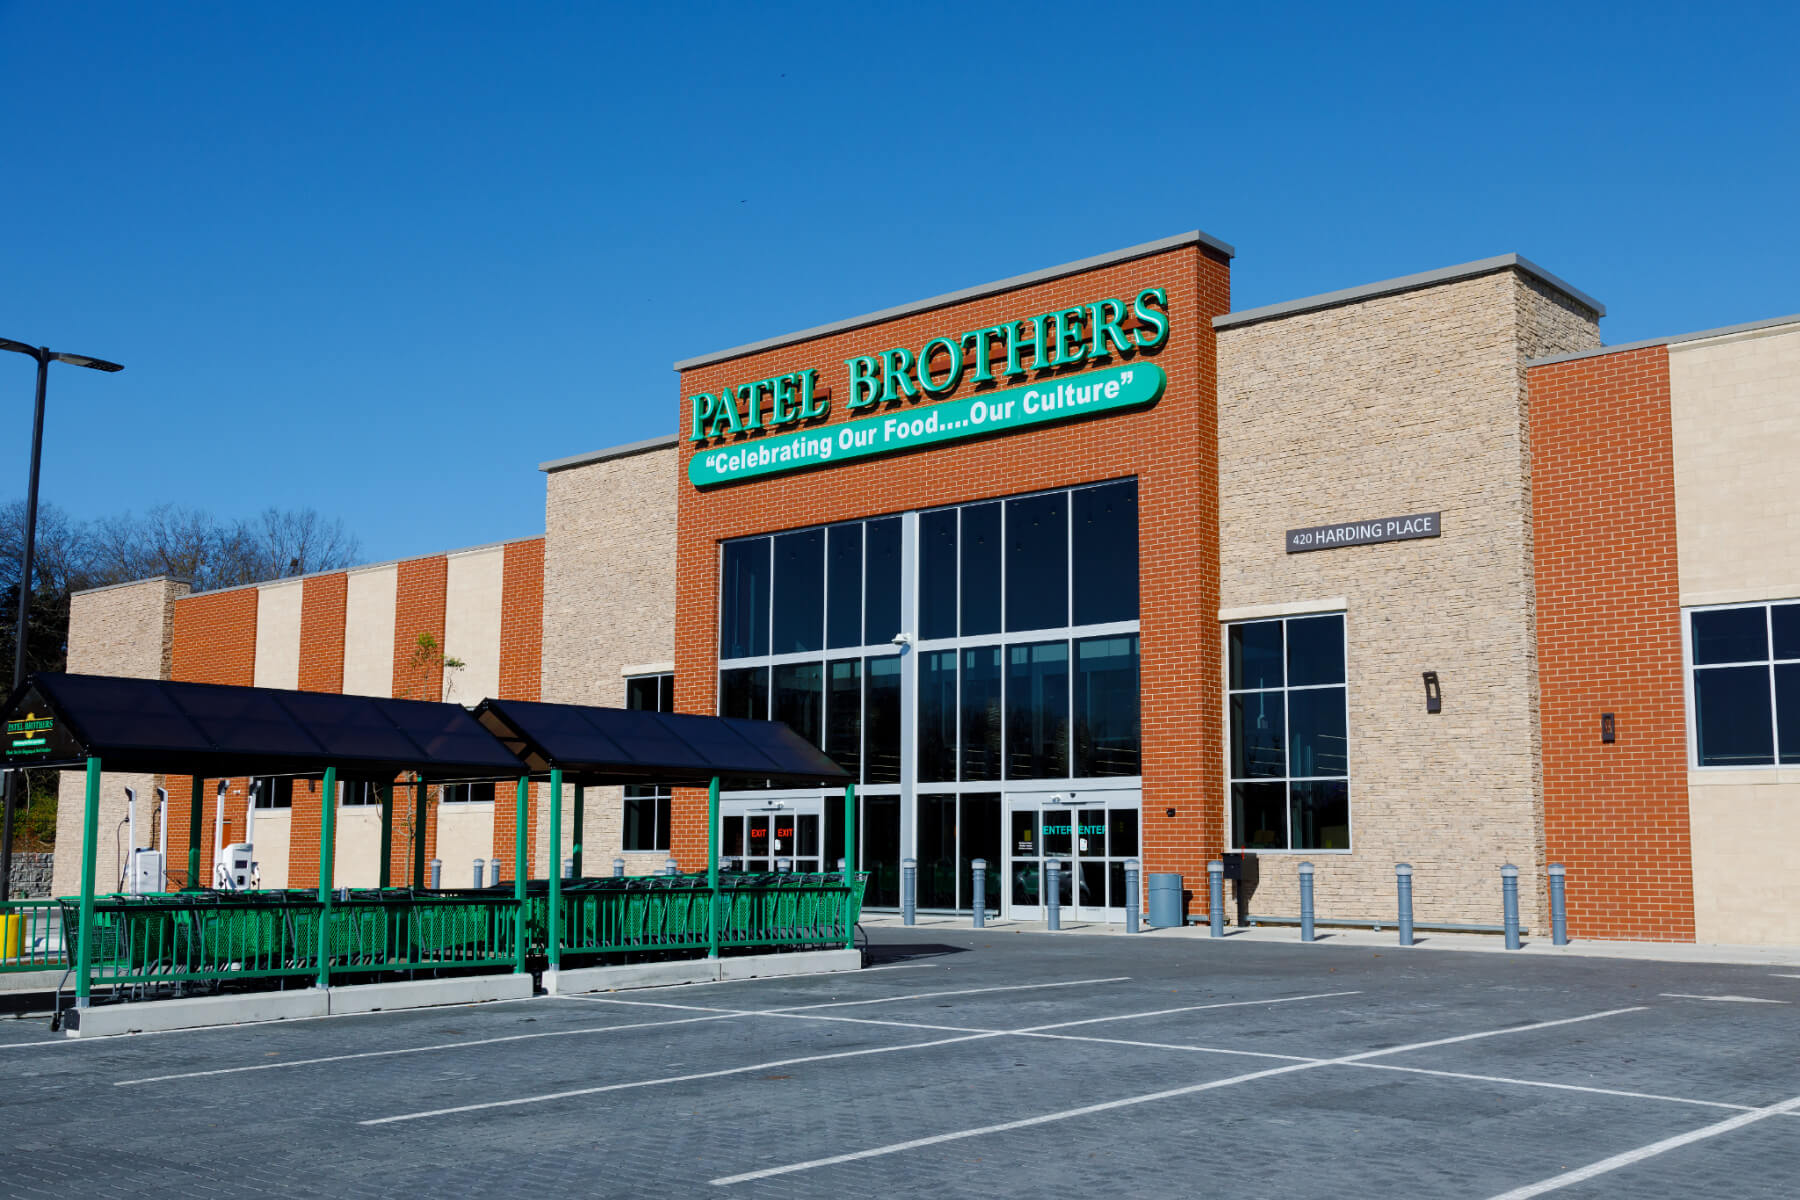 Knoebel Construction completes construction of Patel Brothers Indian-American grocery stores in Arizona and Georgia